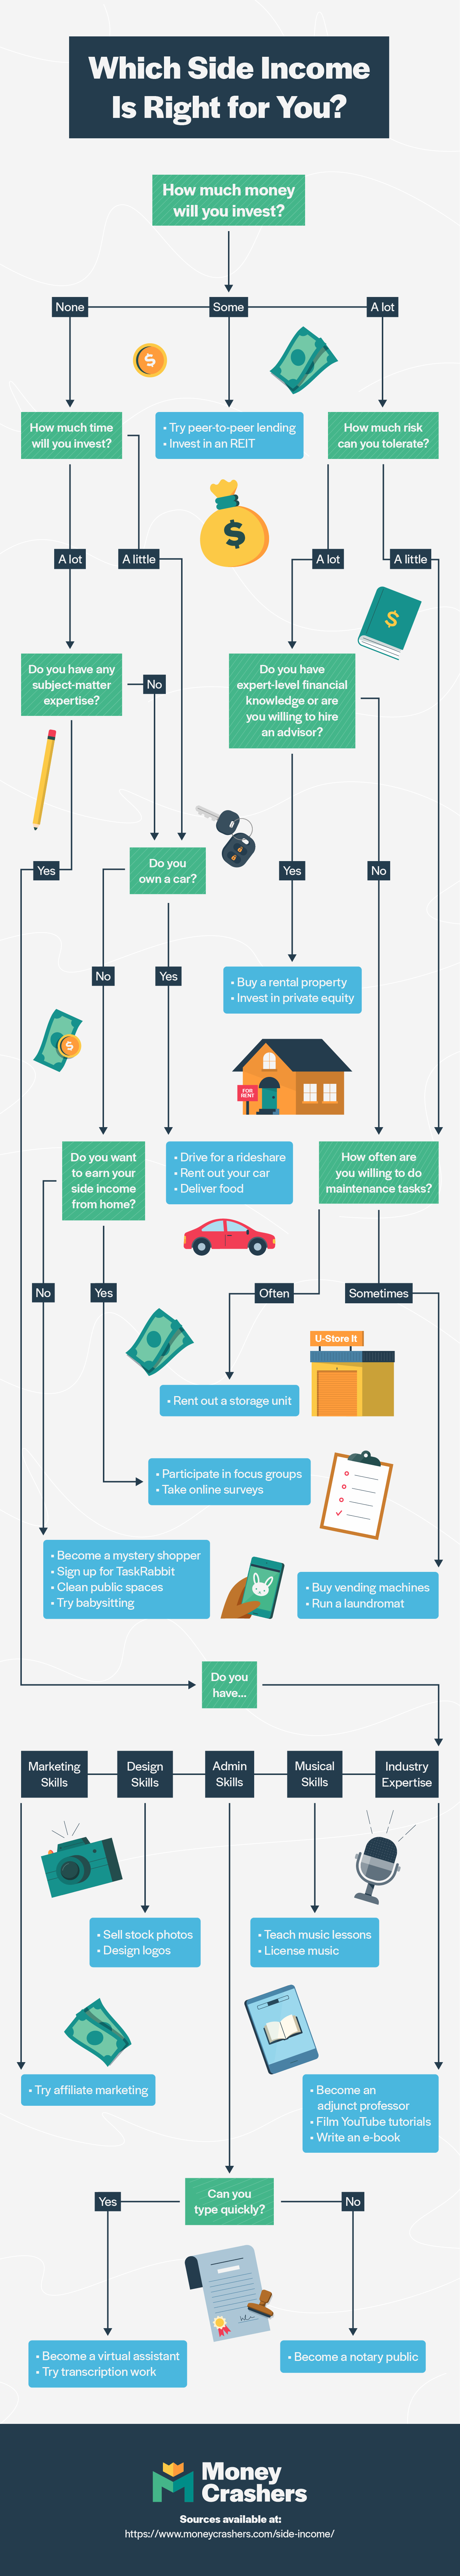 How to choose a side income infographic